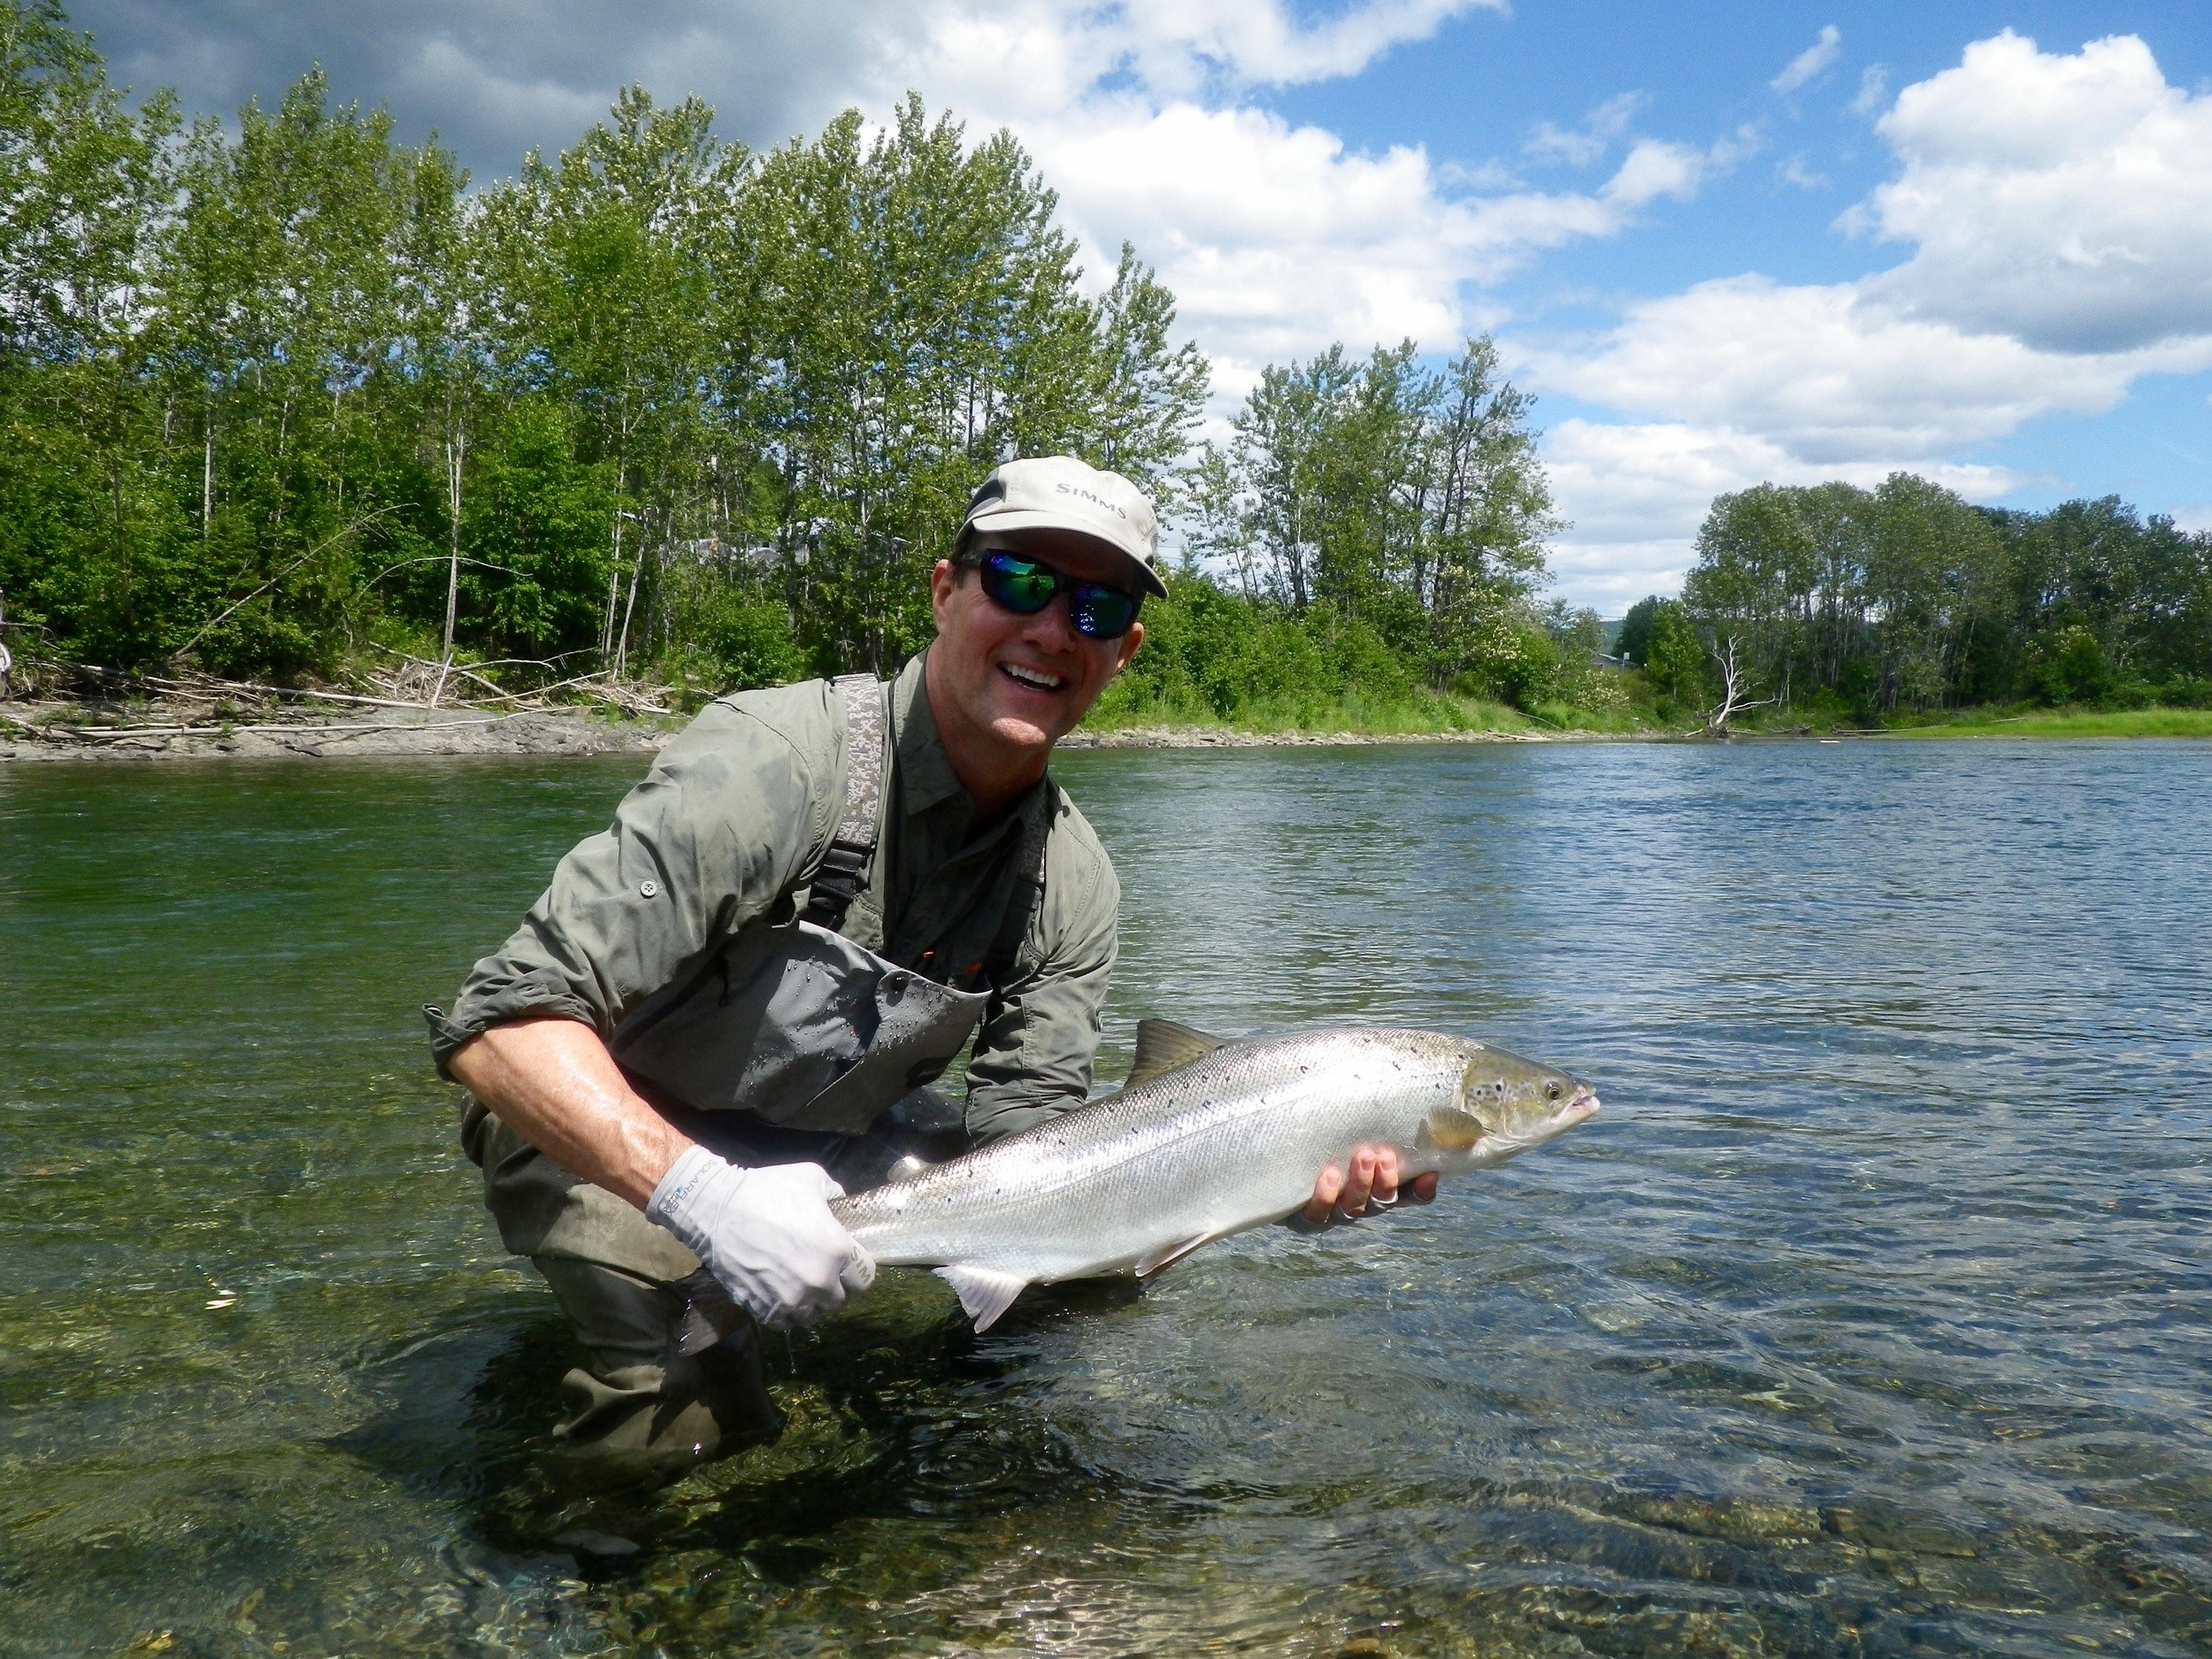 Jay Grinney lands his first Atlantic Salmon of 2016, nice fish Jay!